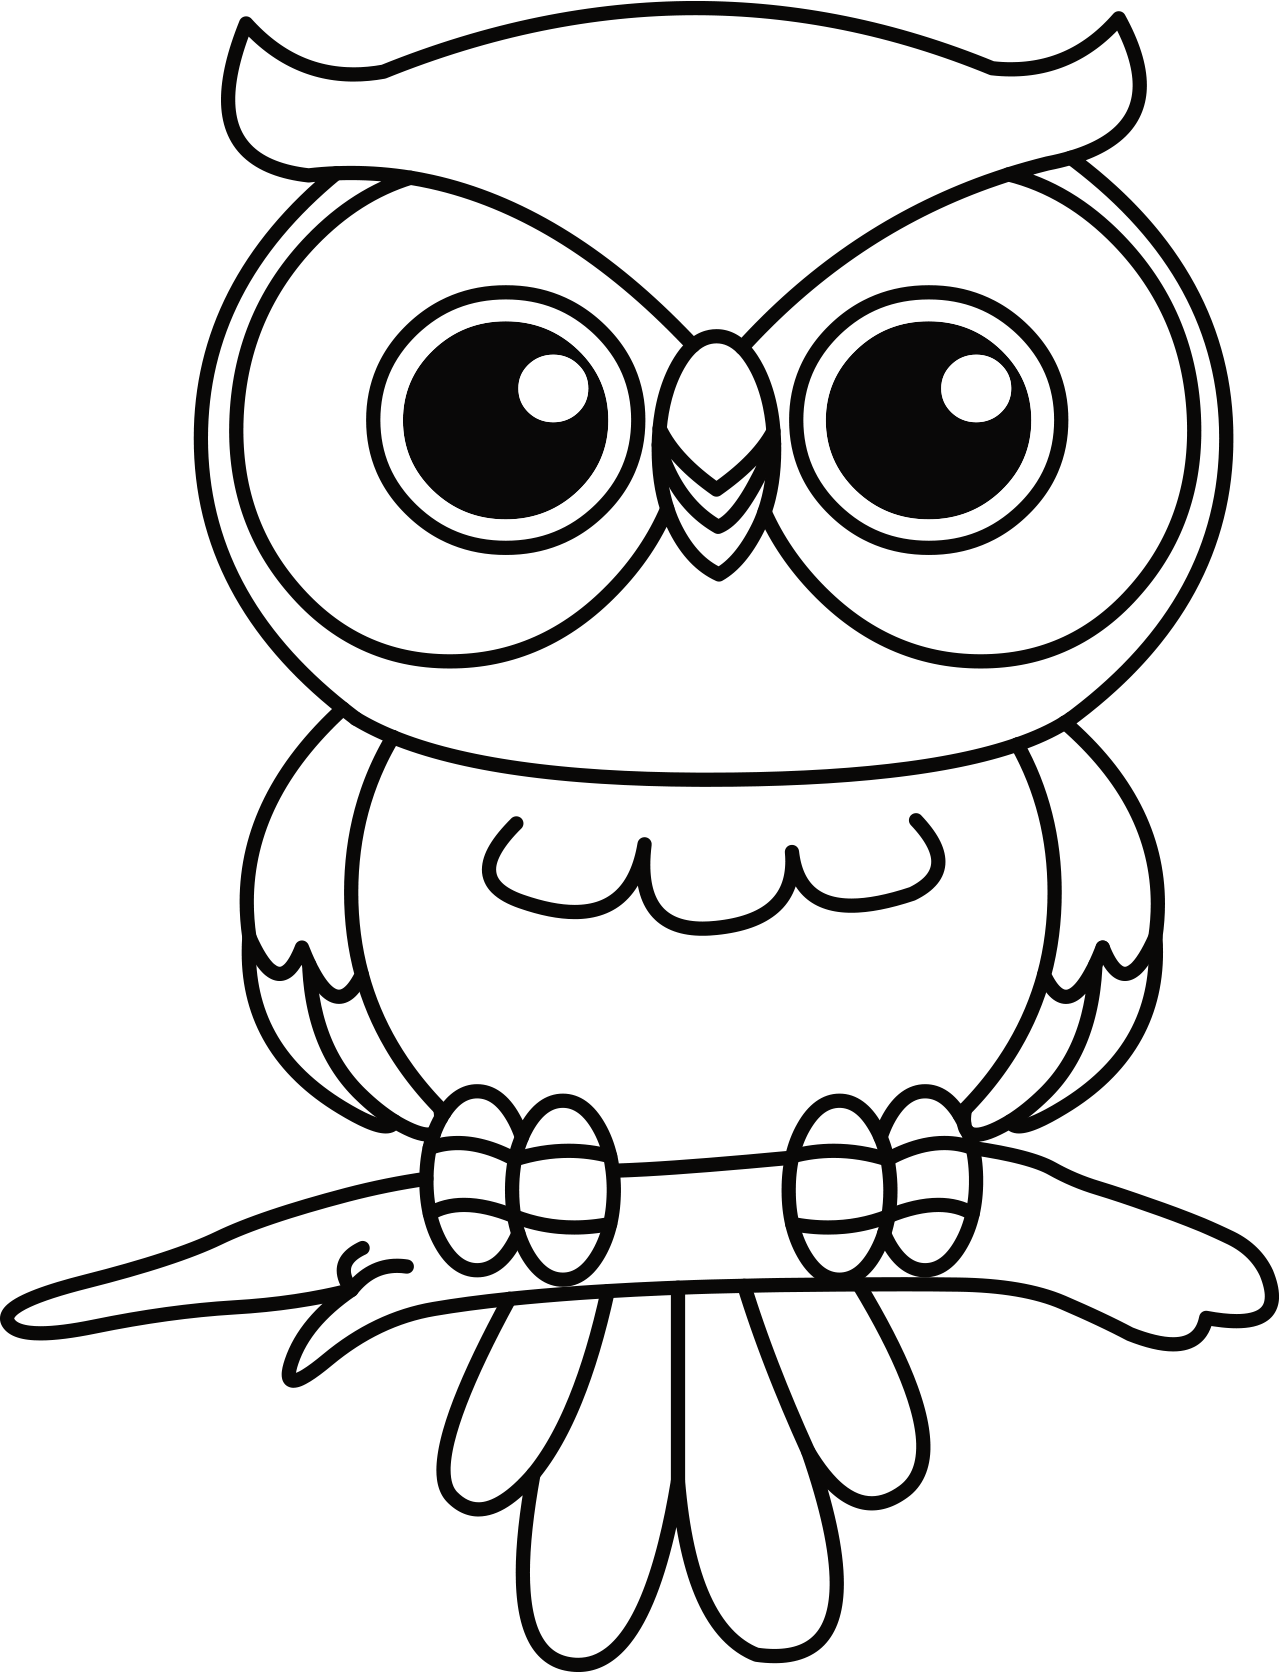 easy cute owl coloring pages free easy to print owl coloring pages owl coloring easy coloring cute pages owl